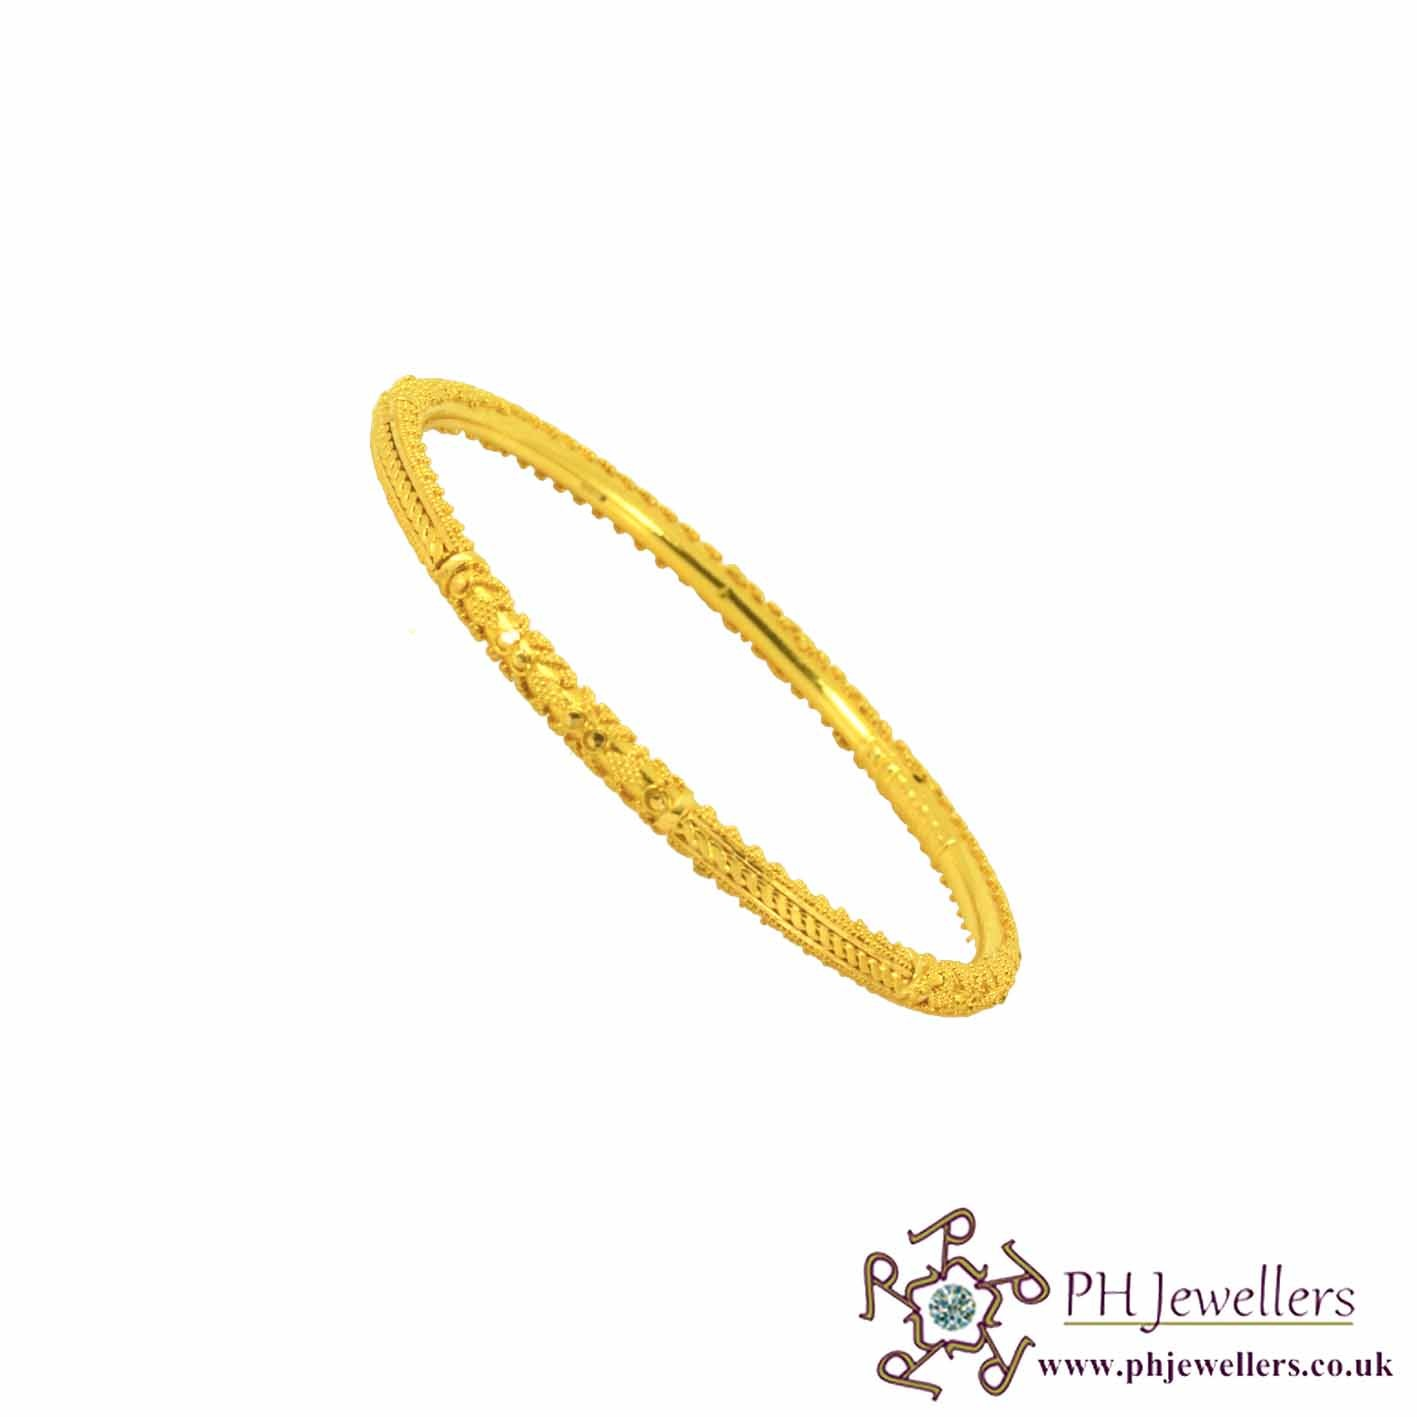 double jewelry girl and gold ladies champagne women model valentine bracelets anniversary diamond bangle for bangles party popular christmas gifts zircon product bracelet